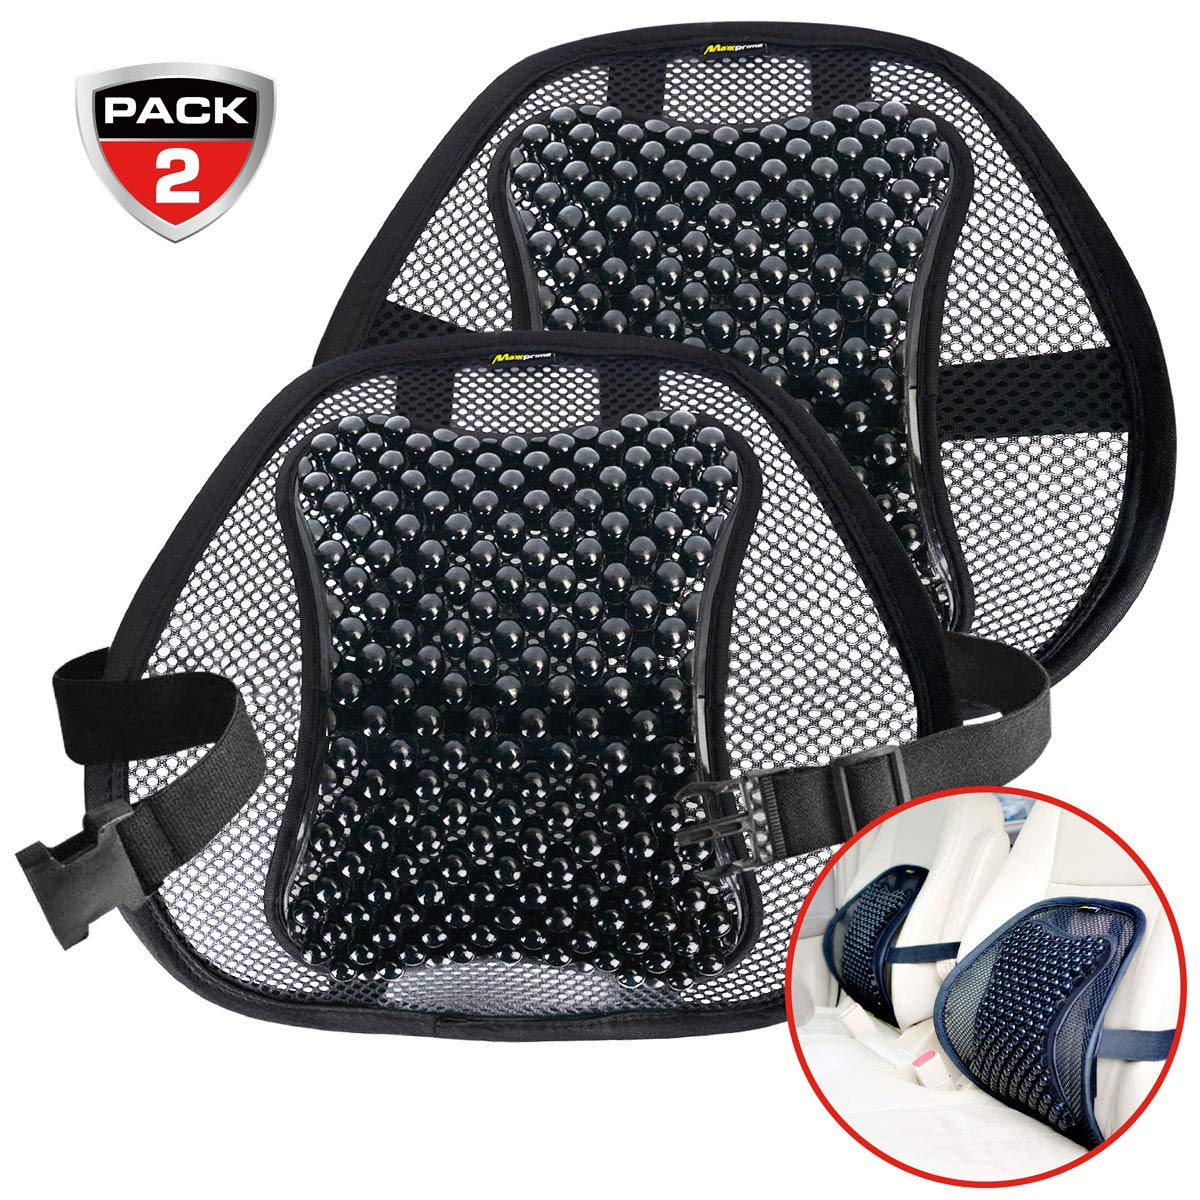 MAXXPRIME Car Lumbar Support, 2 Pack Mesh Lower Back Support Cushion with Wooden Beads for Car, Home and Office Chair, Double-Layer Mesh, Air Flow Breathable, Curve Adjustable and Comfortable, Black